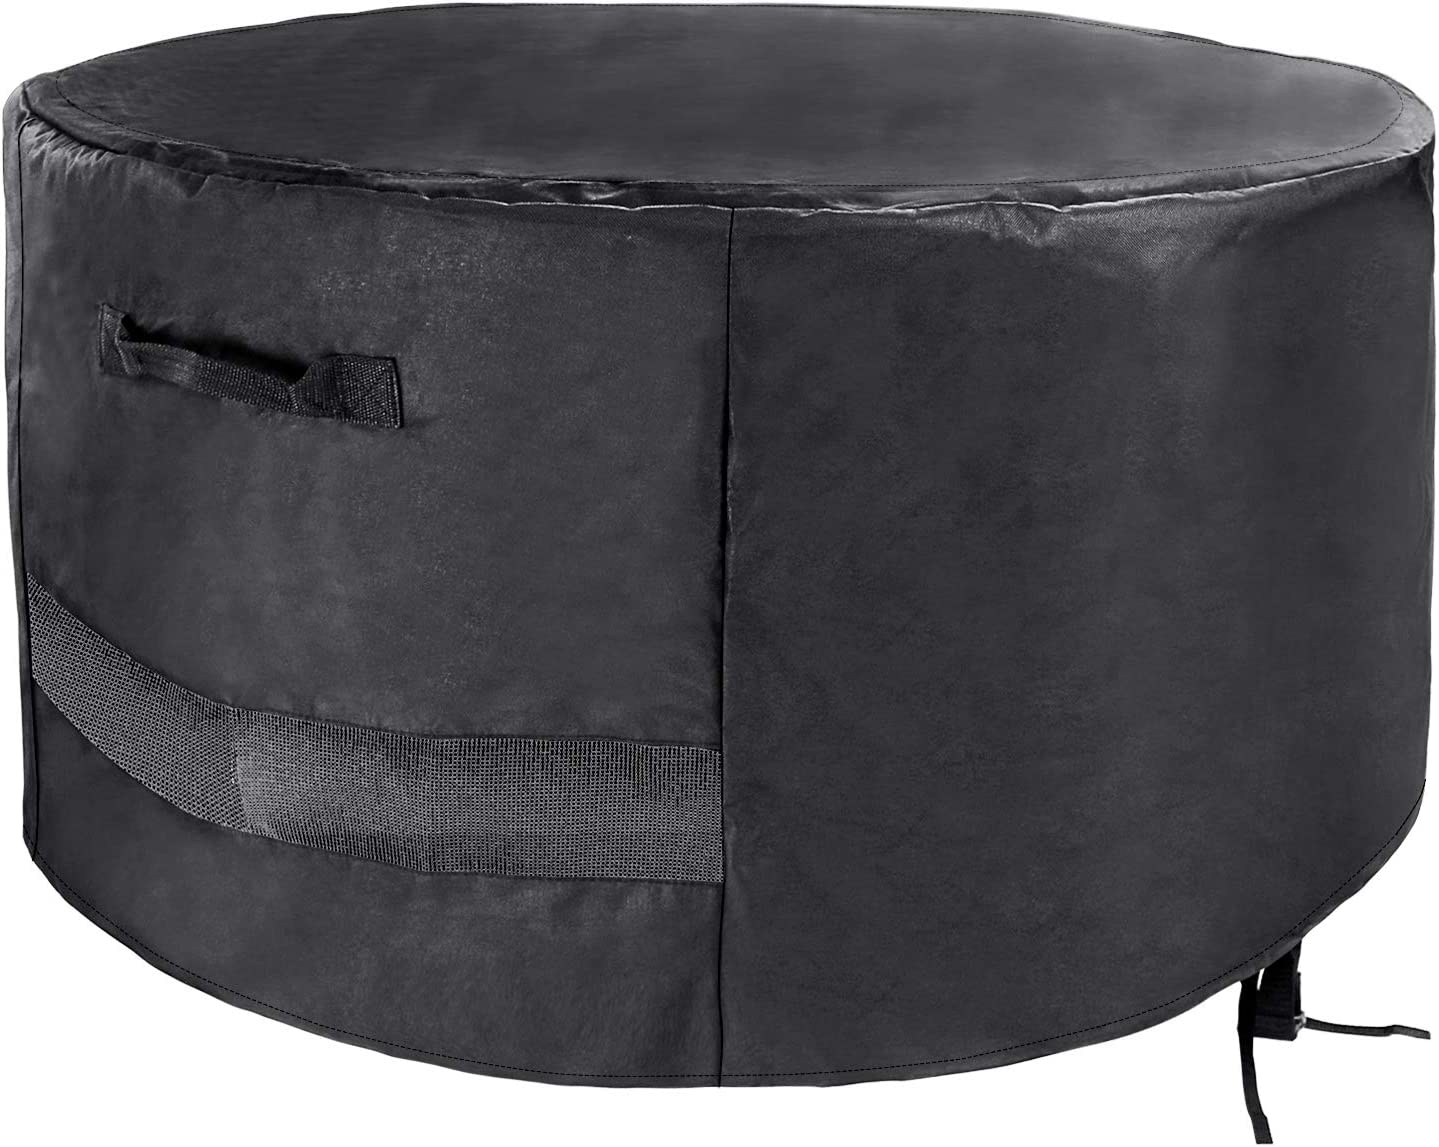 Uniflasy Round Fire Pit Cover, Weather Resistant and Waterproof 600D Heavy Duty Round Patio Firepit Bowl Cover, Outdoor Garden Patio Heater Cover, Black, 36 Inch